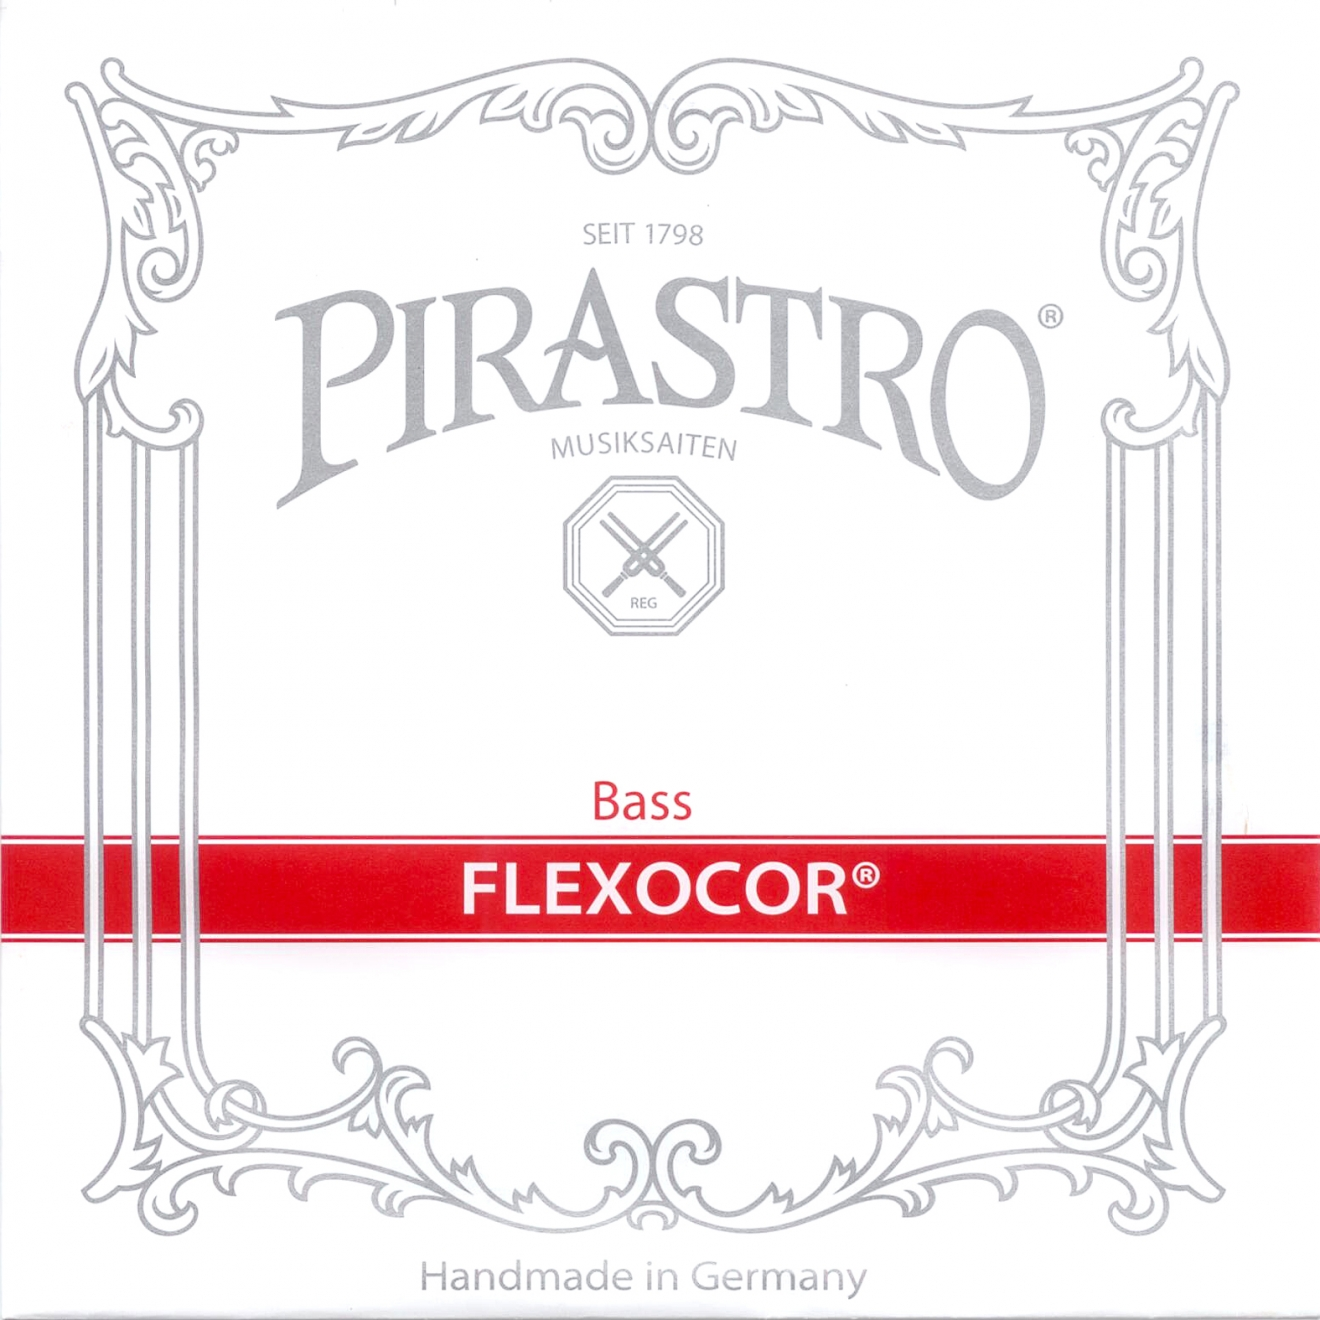 PIRASTRO Flexocor Orchester Bass G